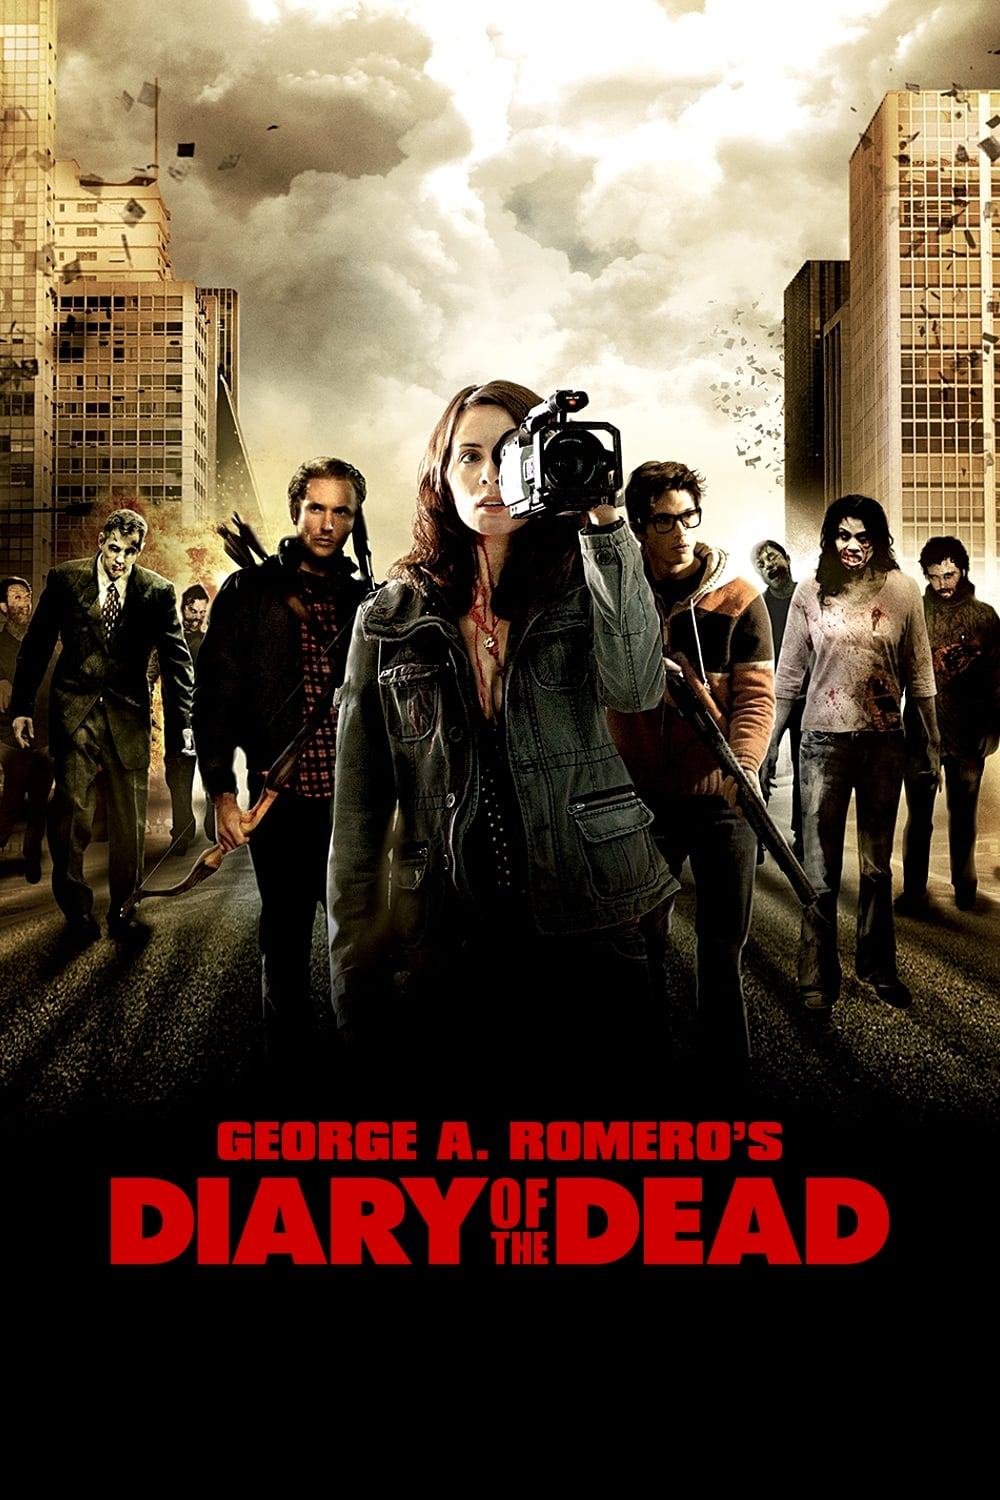 Diary of the Dead on FREECABLE TV